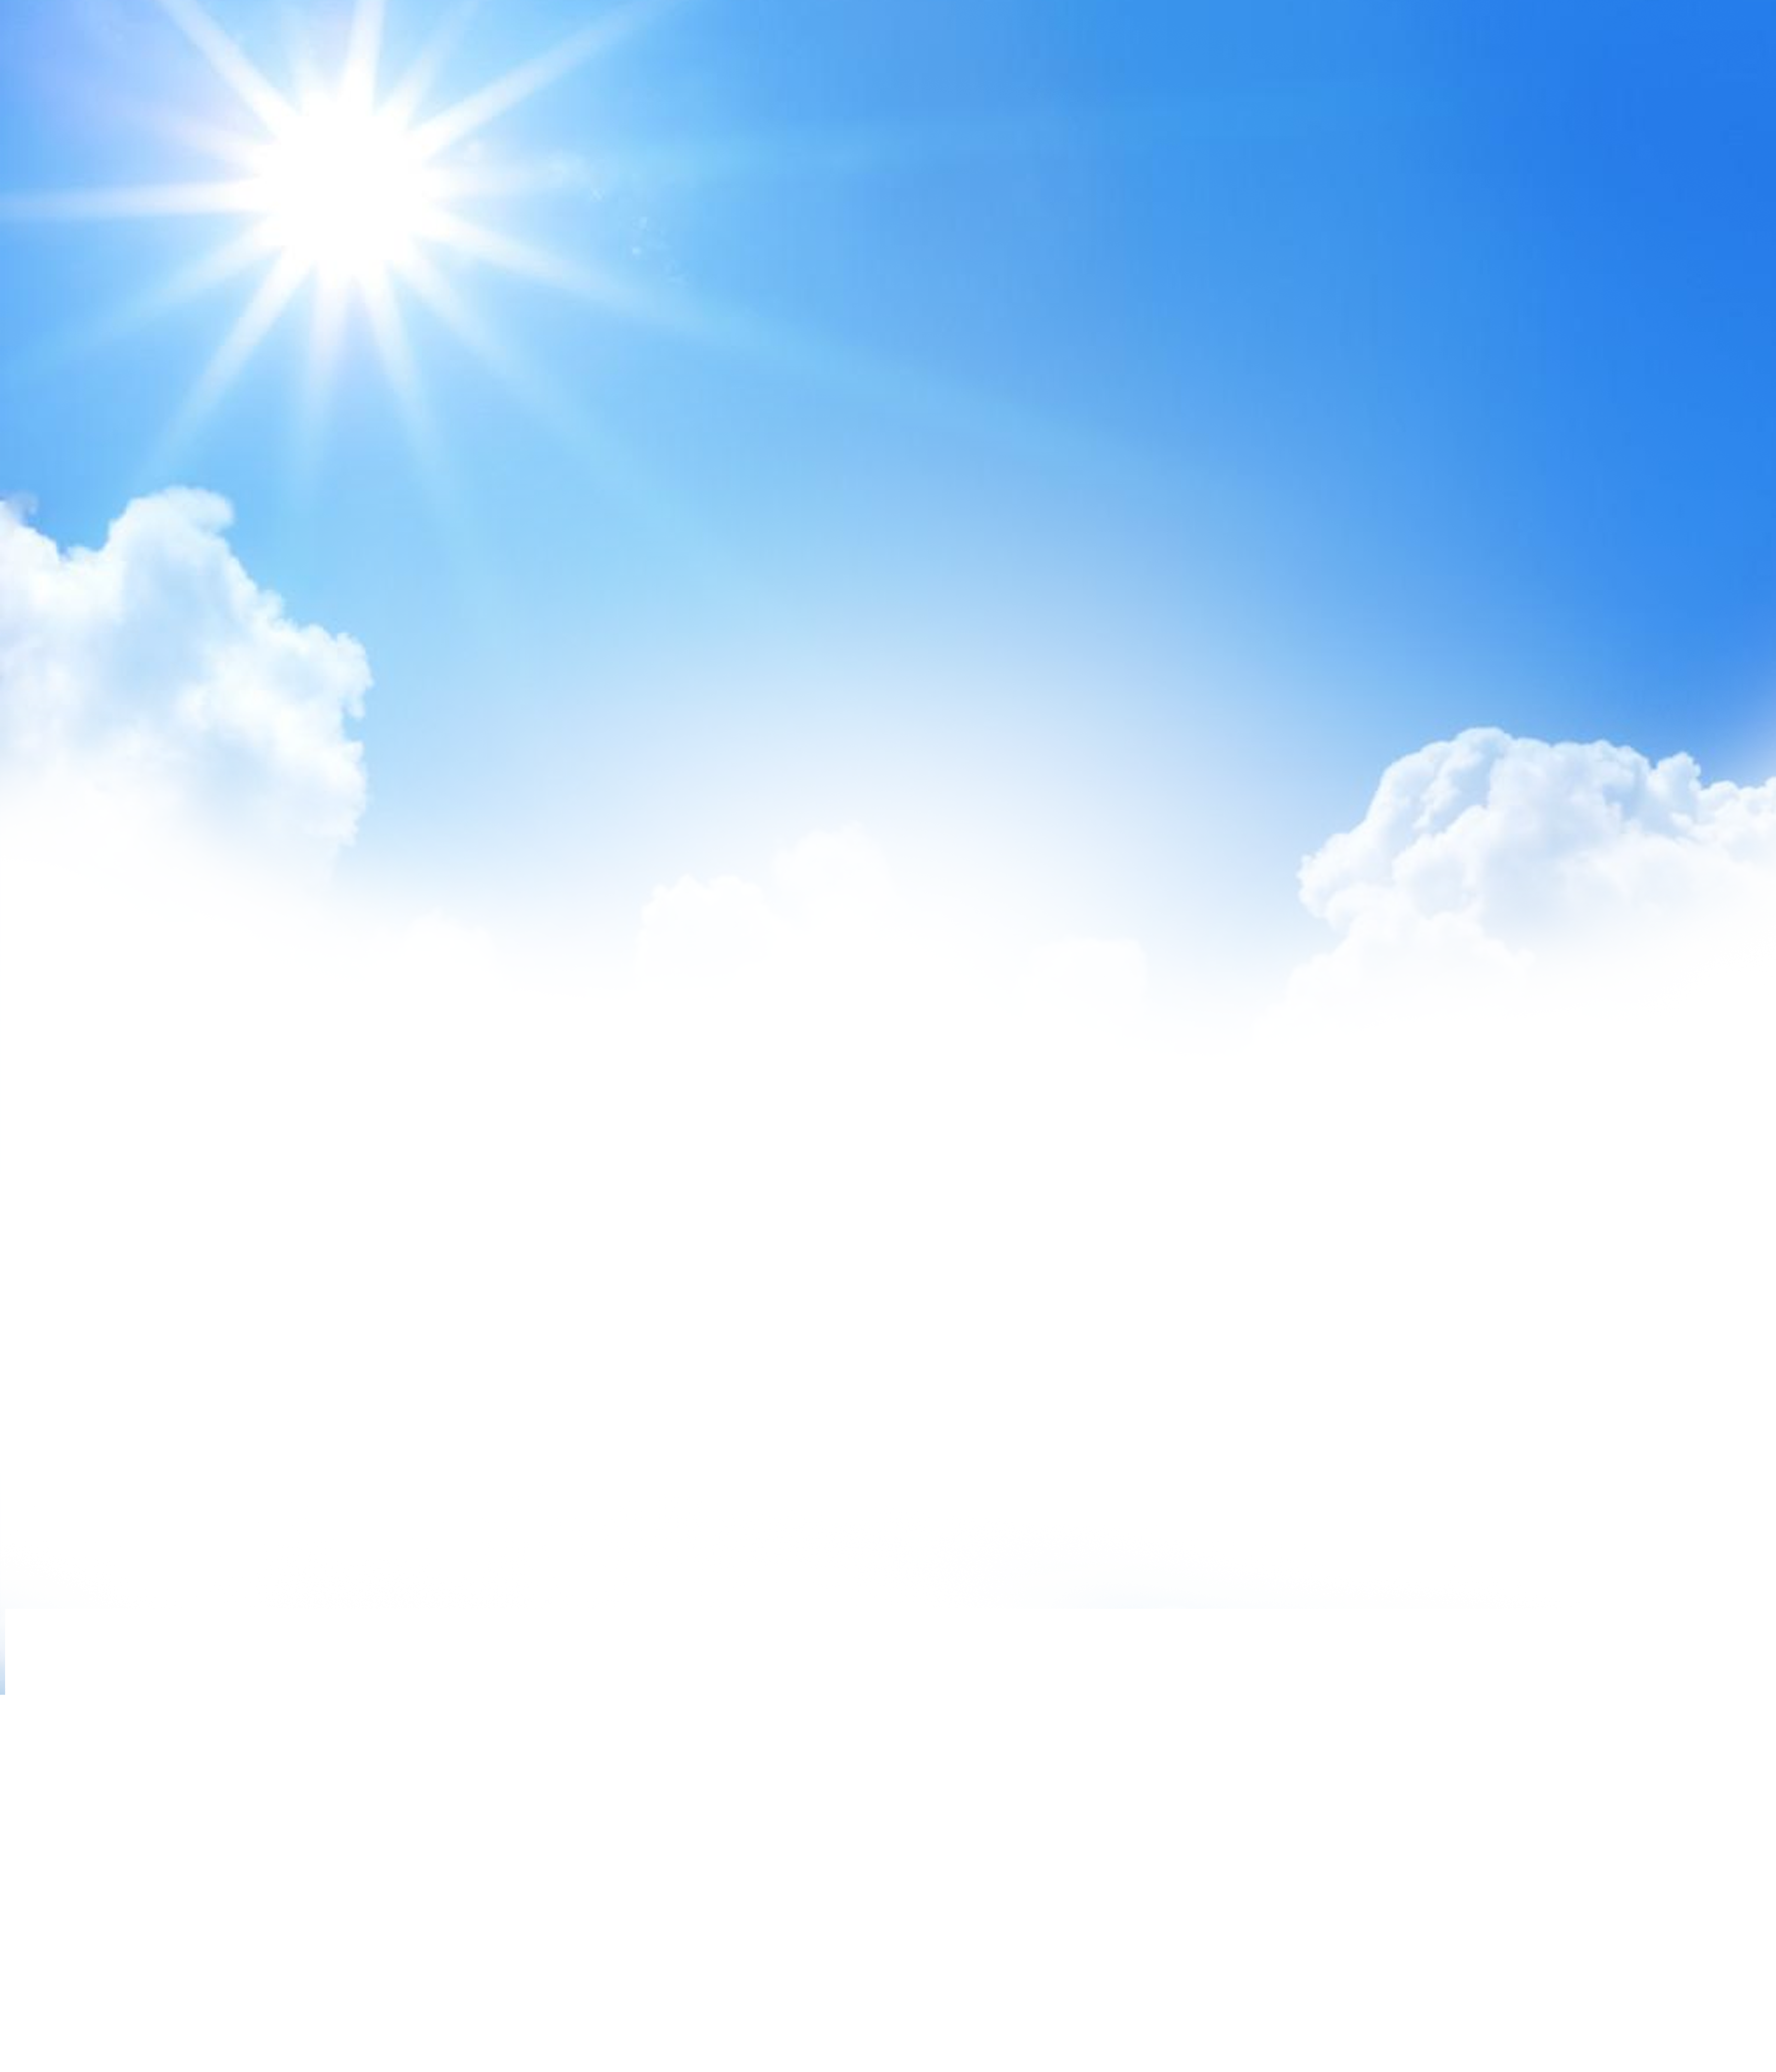 Cloud Background HD Png images Free download